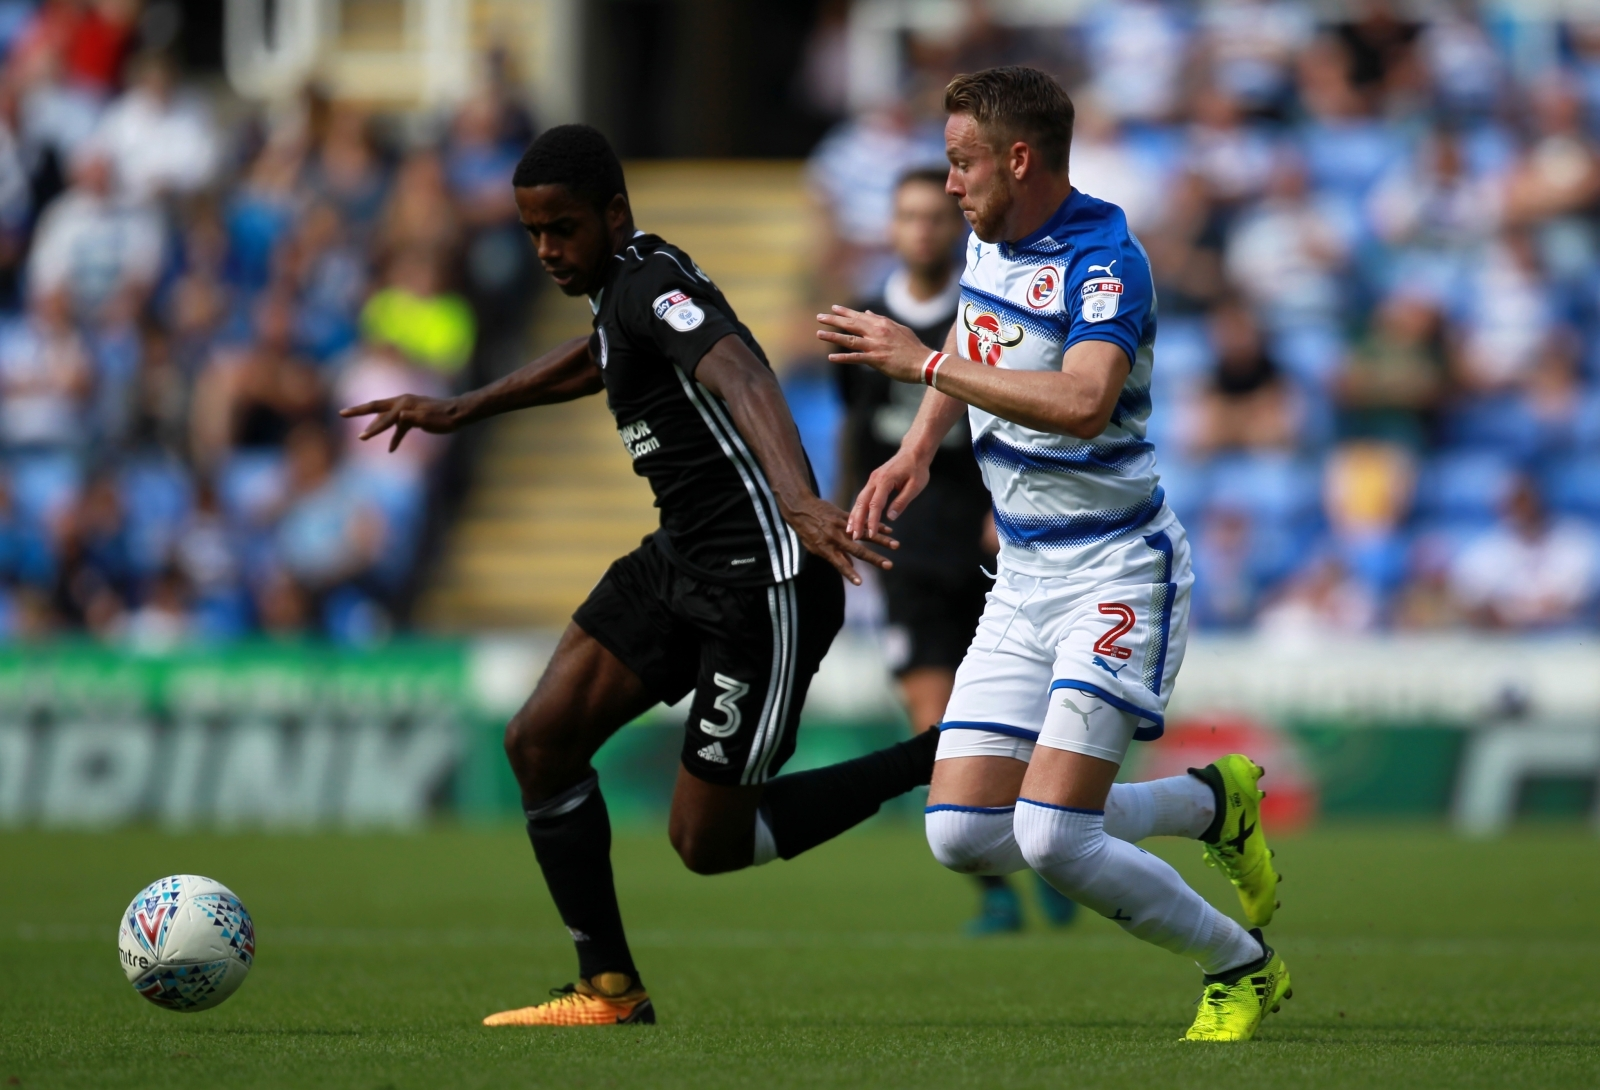 United keen on £25m-rated Sessegnon